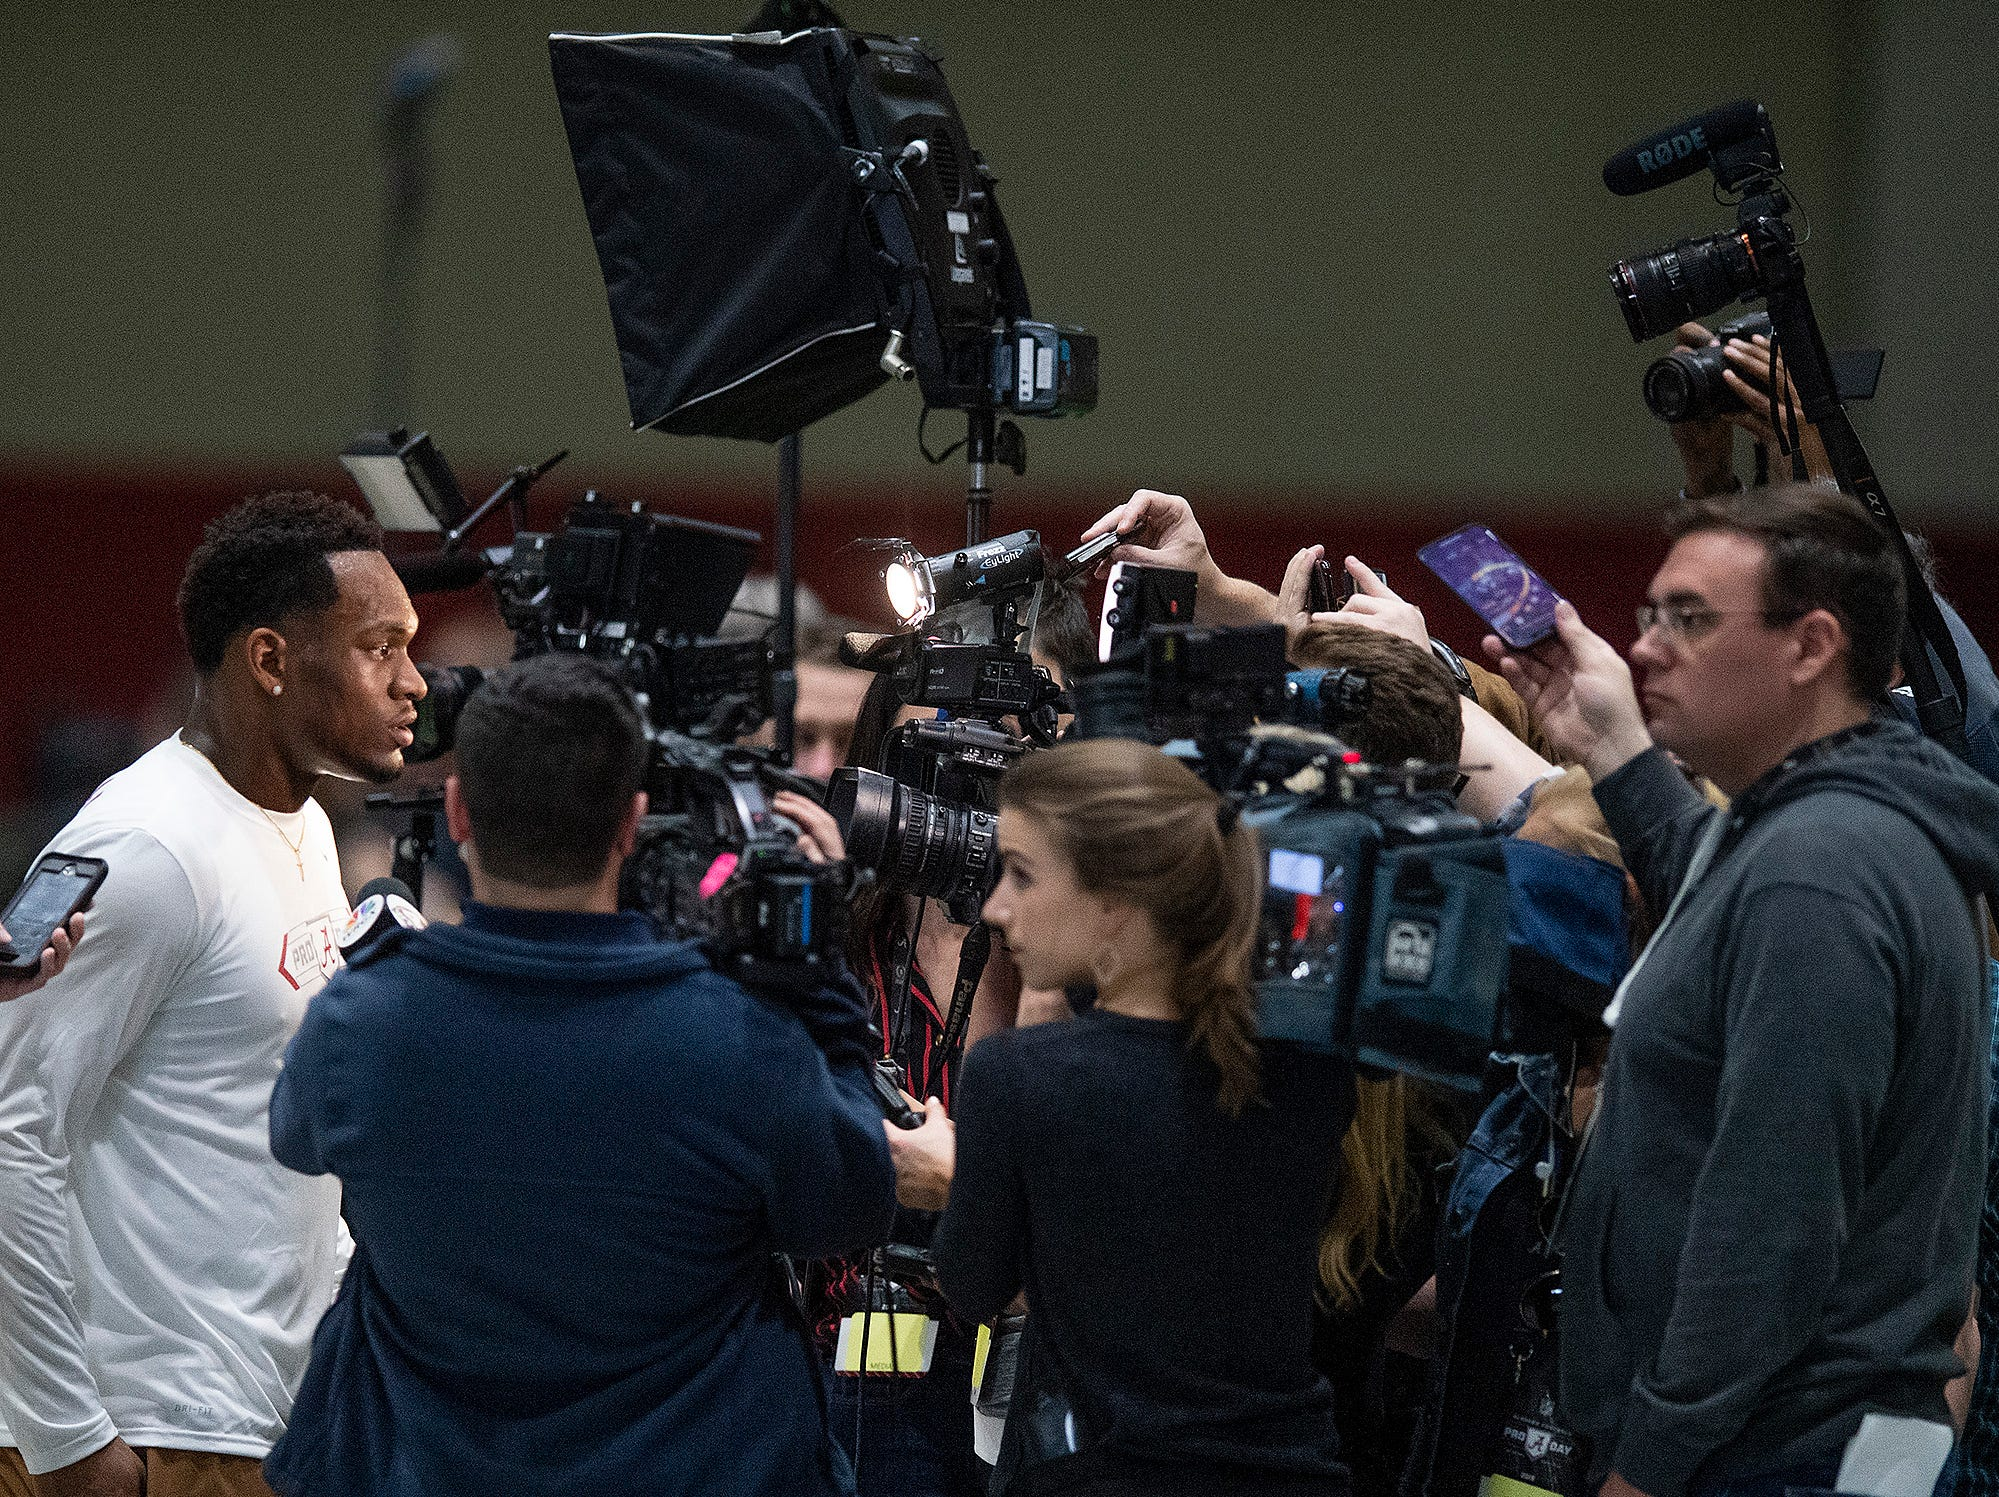 Alabama linebacker Mack Wilson talks to the media during Pro Day on the University of Alabama campus in Tuscaloosa, Ala., on Tuesday March 19, 2019.